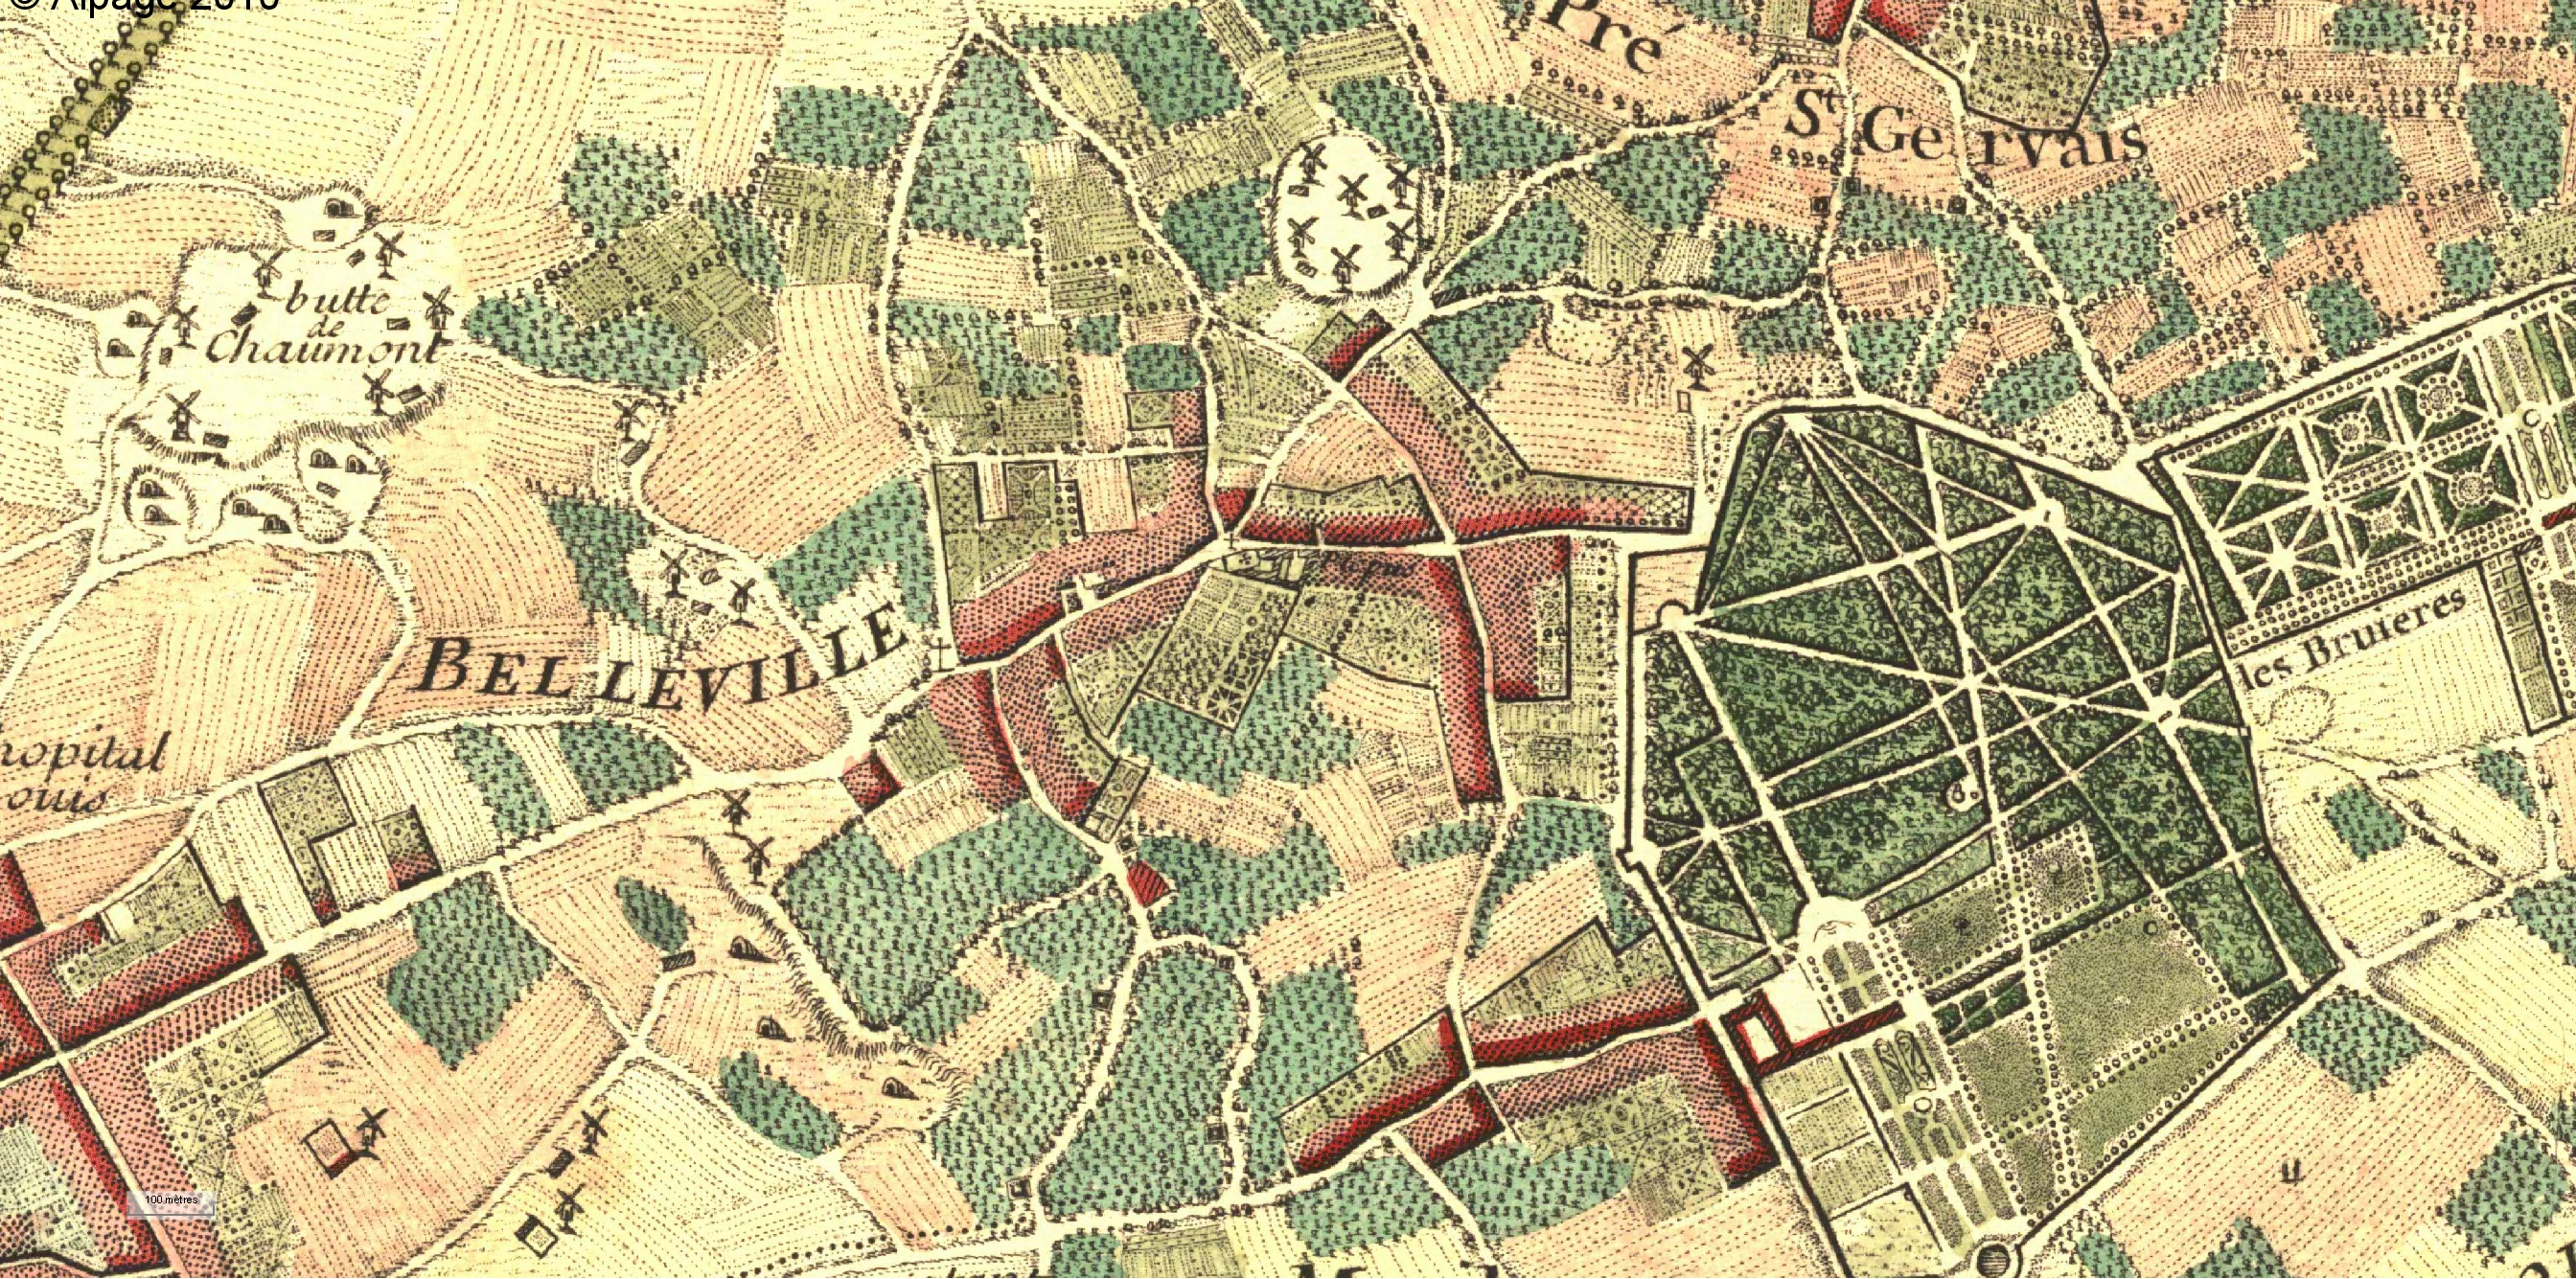 Belleville et charonne atlas historique de paris for Plan de belle villa